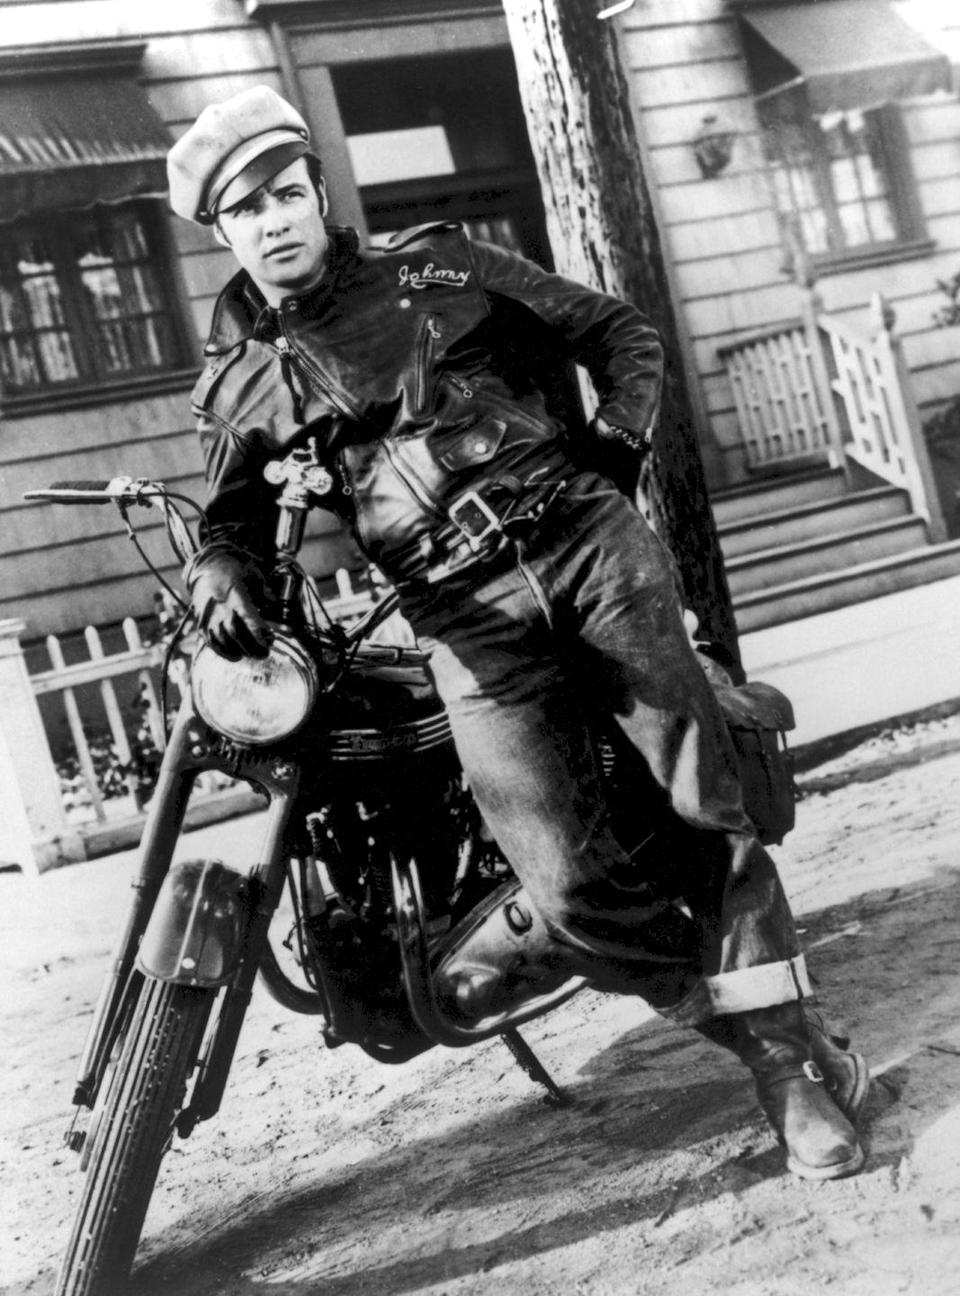 <p>Film's notorious bad boy, Marlon Brando, is tough as nails, as he drives his motorcycle through the streets of Paris in <em>The Wild One</em>.</p>